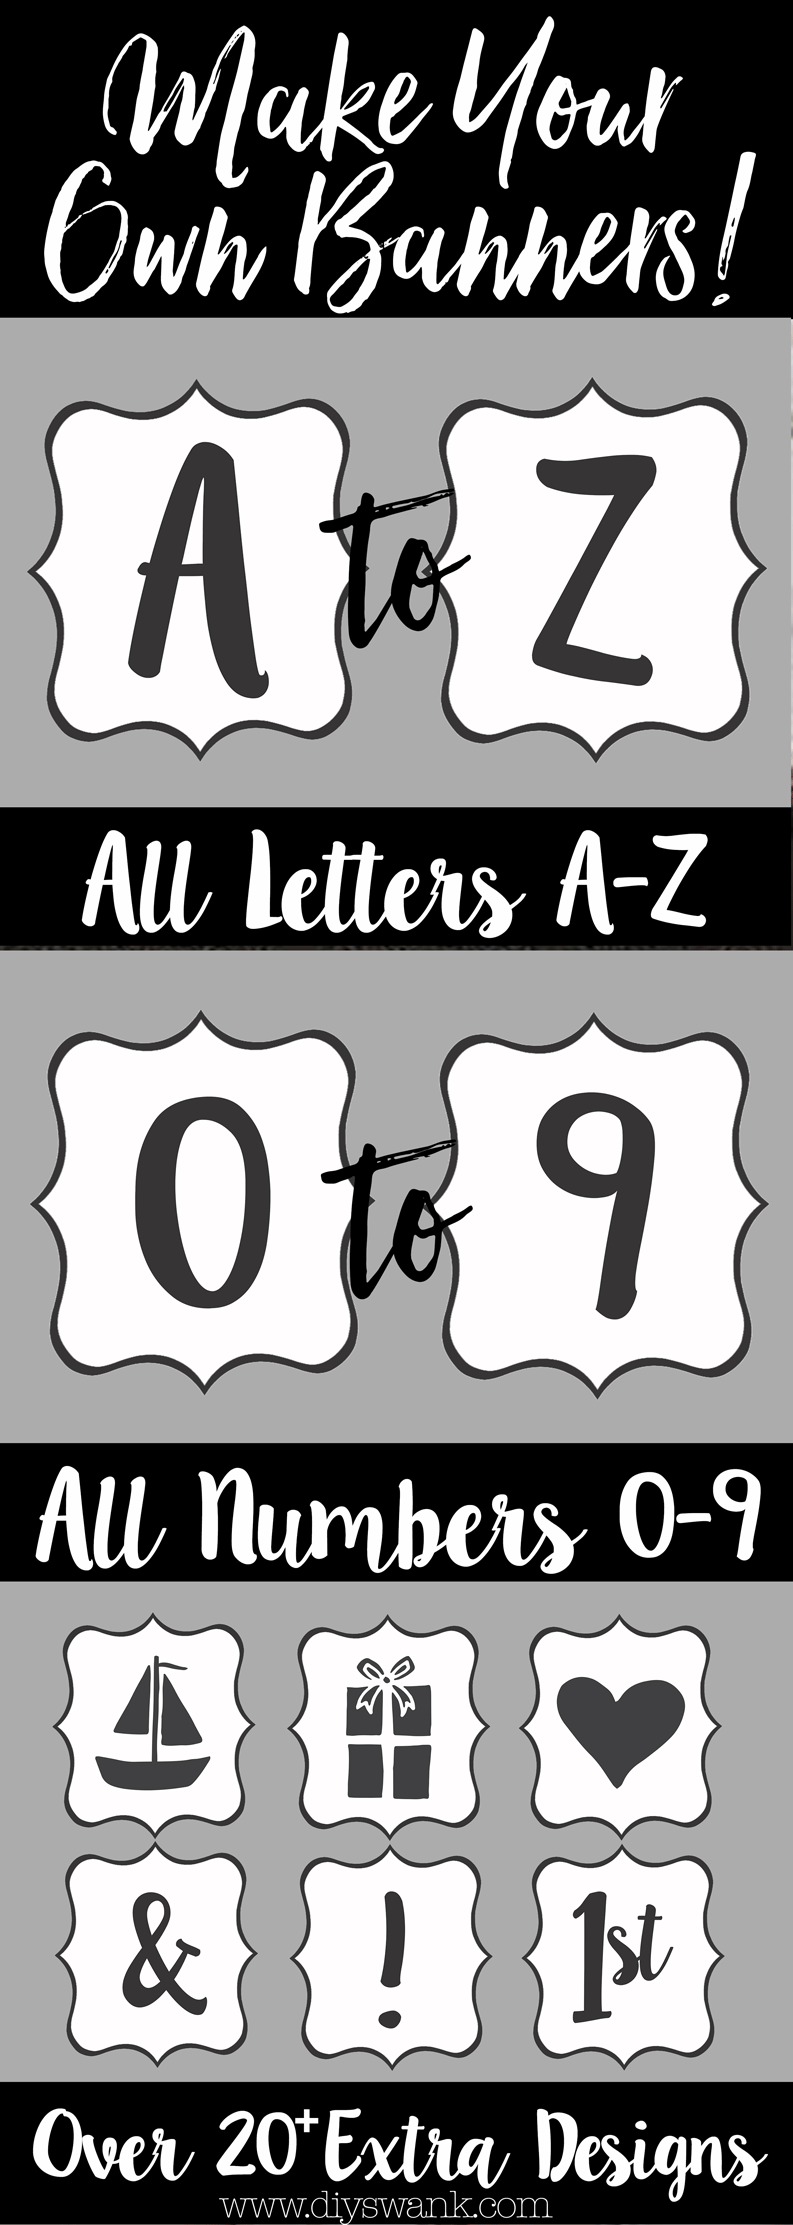 printable banner letters! all letters a-z, number 0-9 and 20 extra